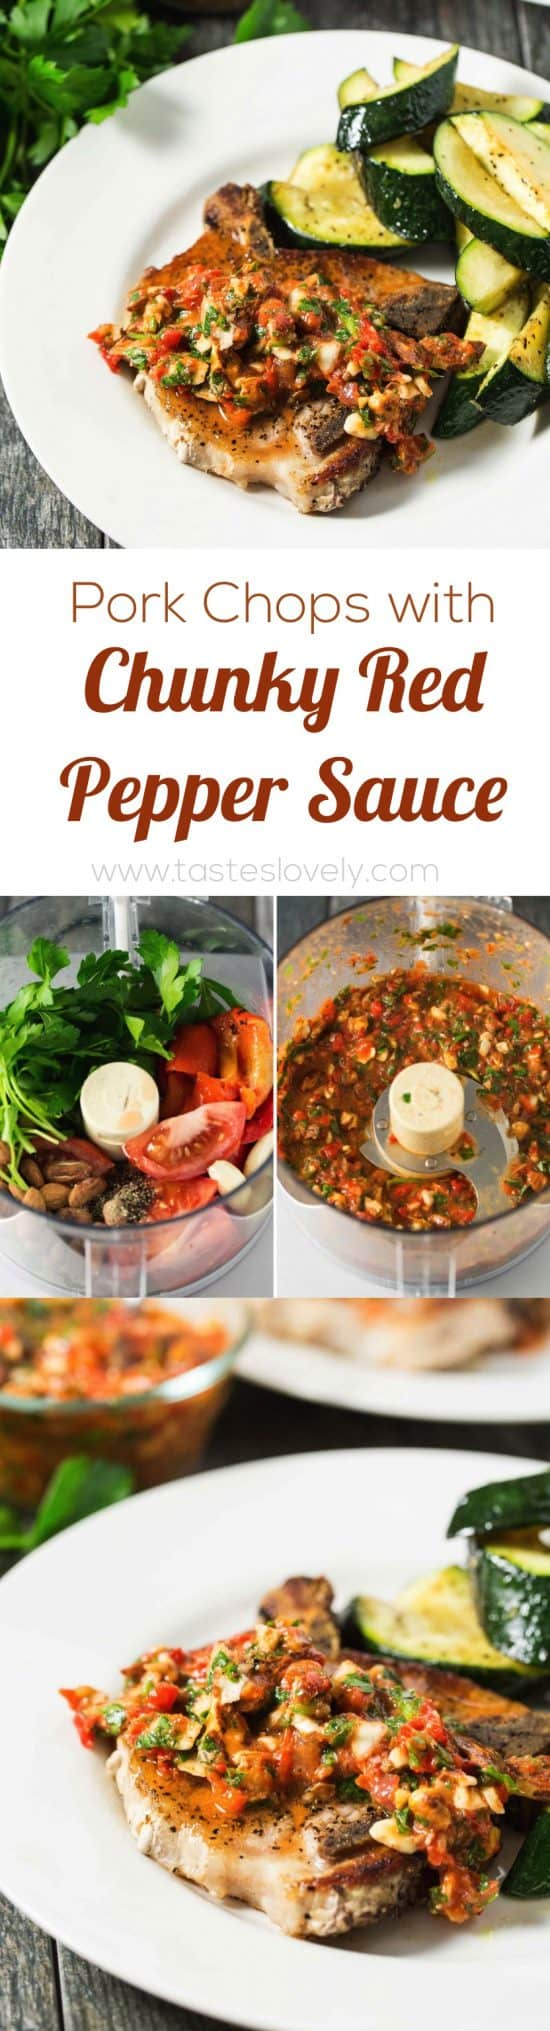 Pork Chops with Chunky Roasted Red Pepper Sauce, easy and healthy dinner that is paleo, gluten free, dairy free, low carb and Whole30